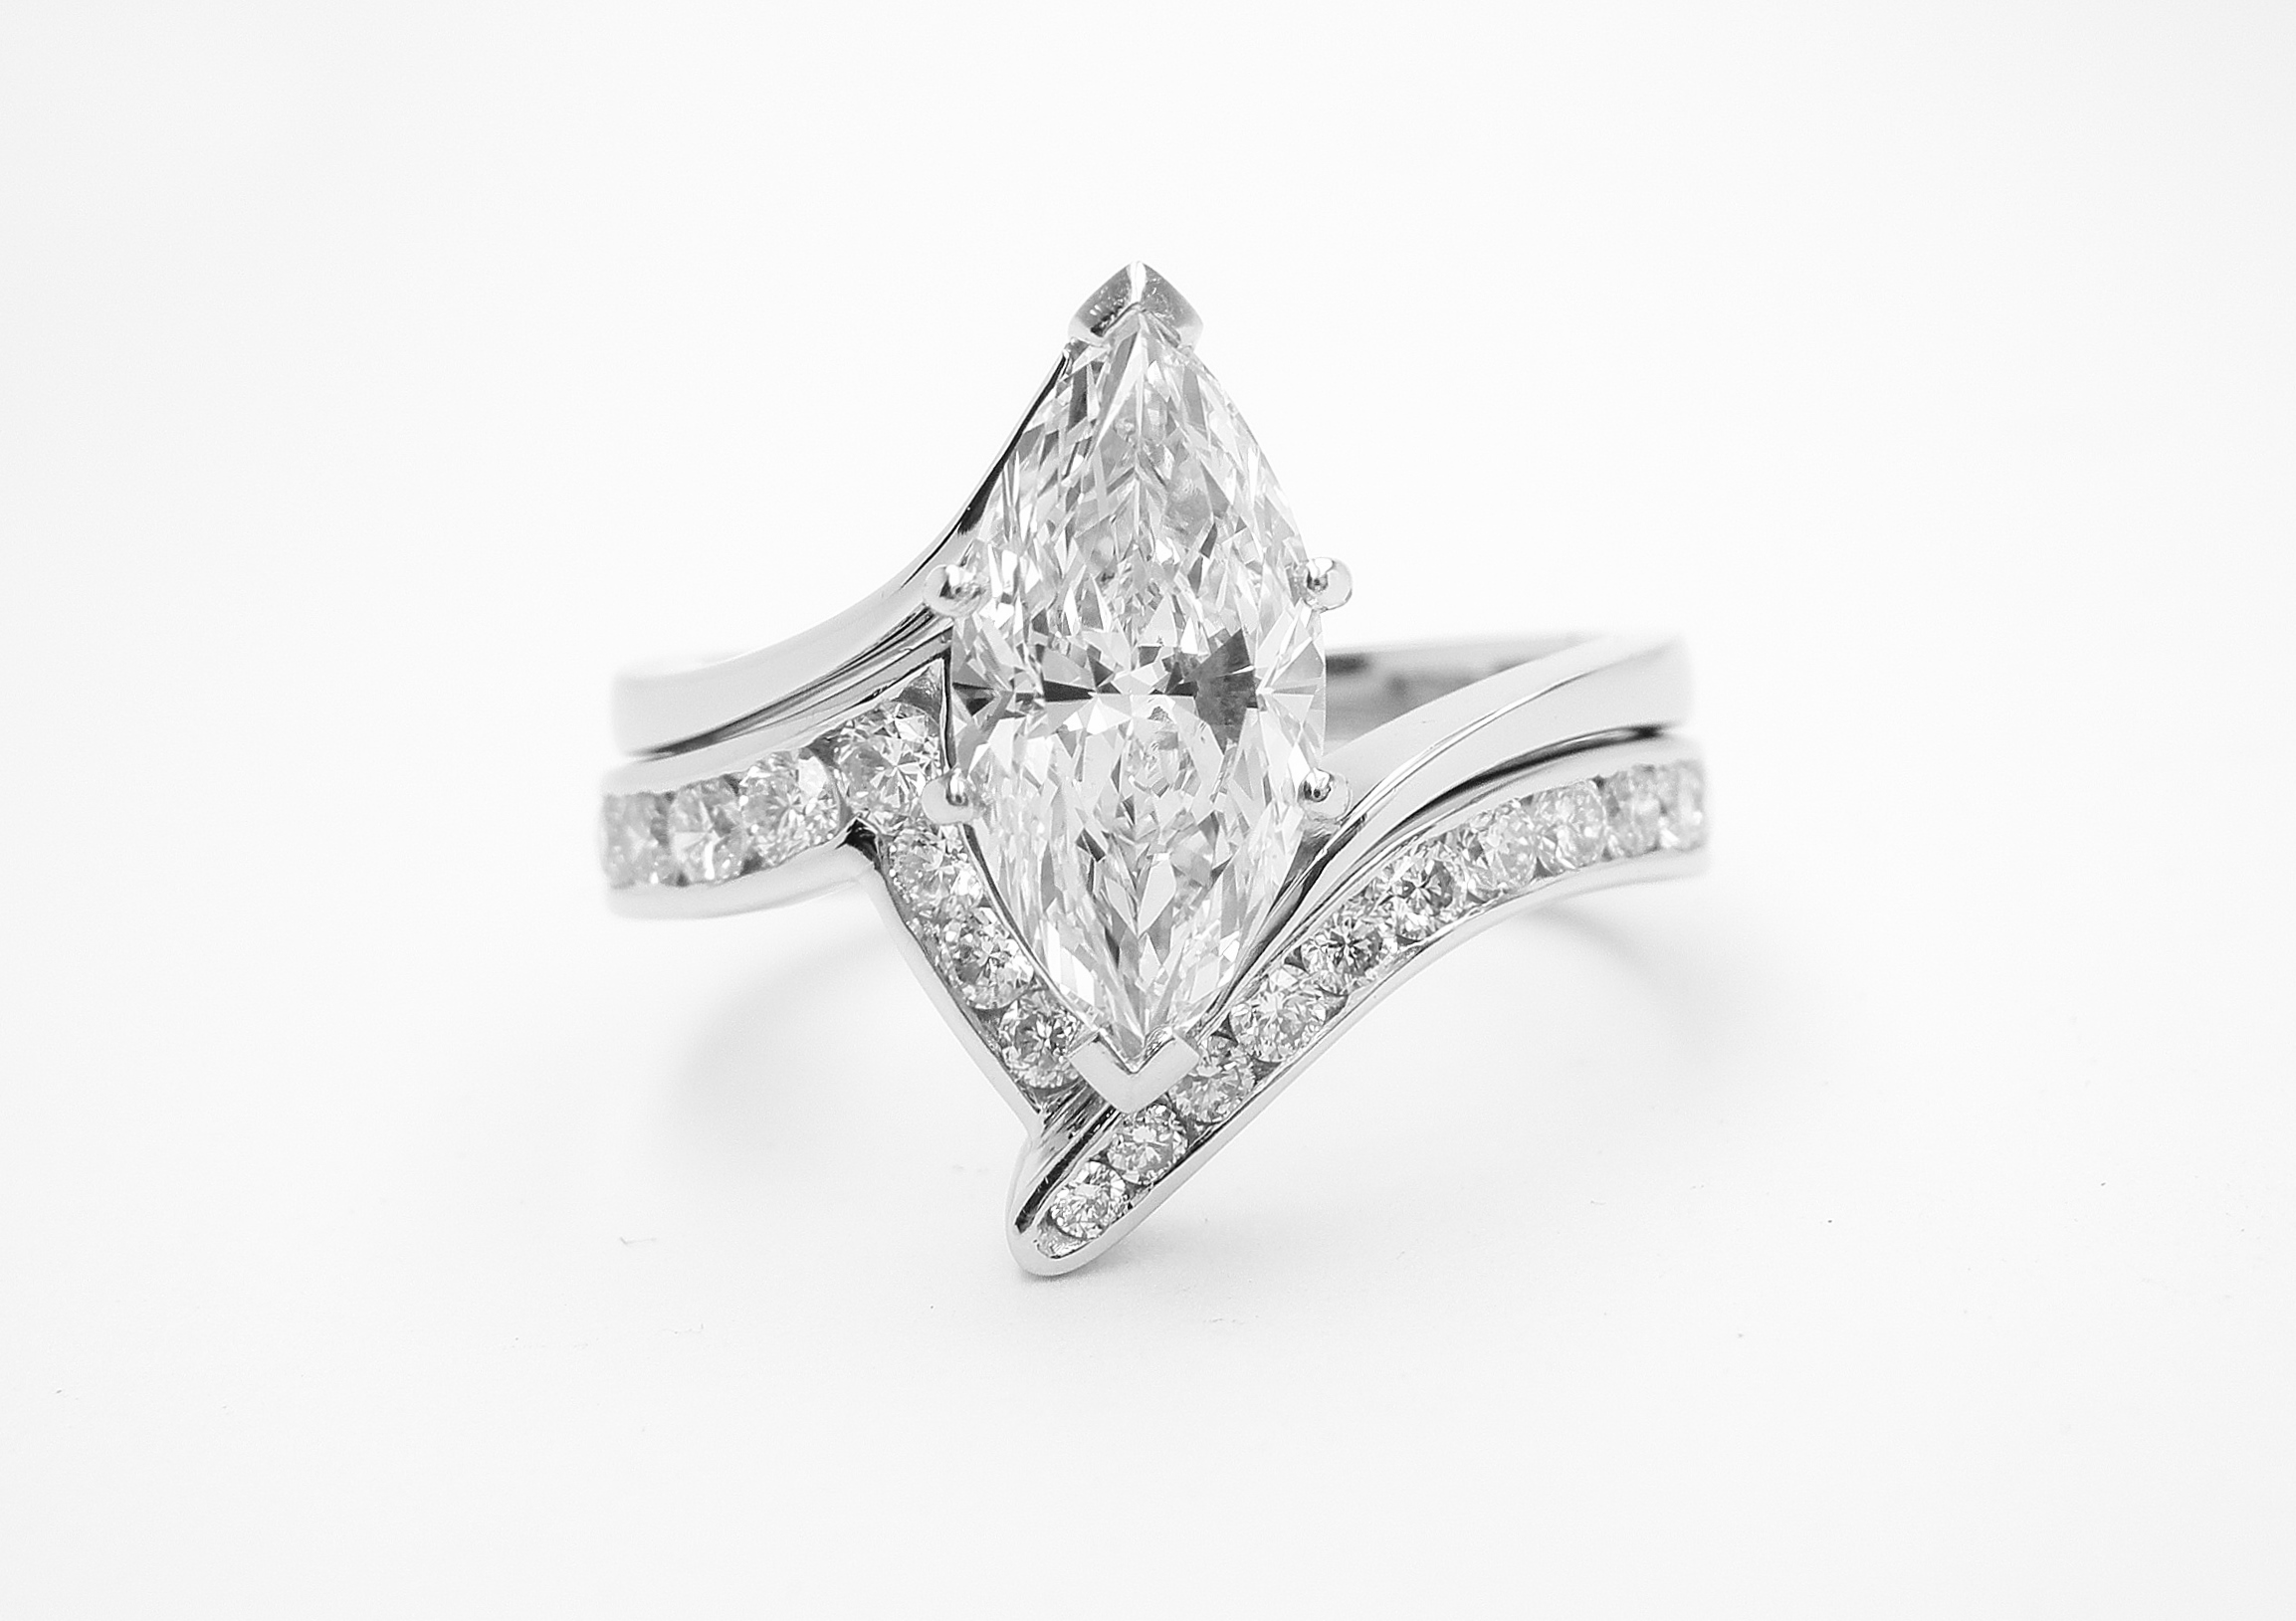 Platinum zig-zag wedding ring shaped to fit around a single stone marquise cross-over engagement ring and channel set with round brilliant cut diamonds to 55% cover.